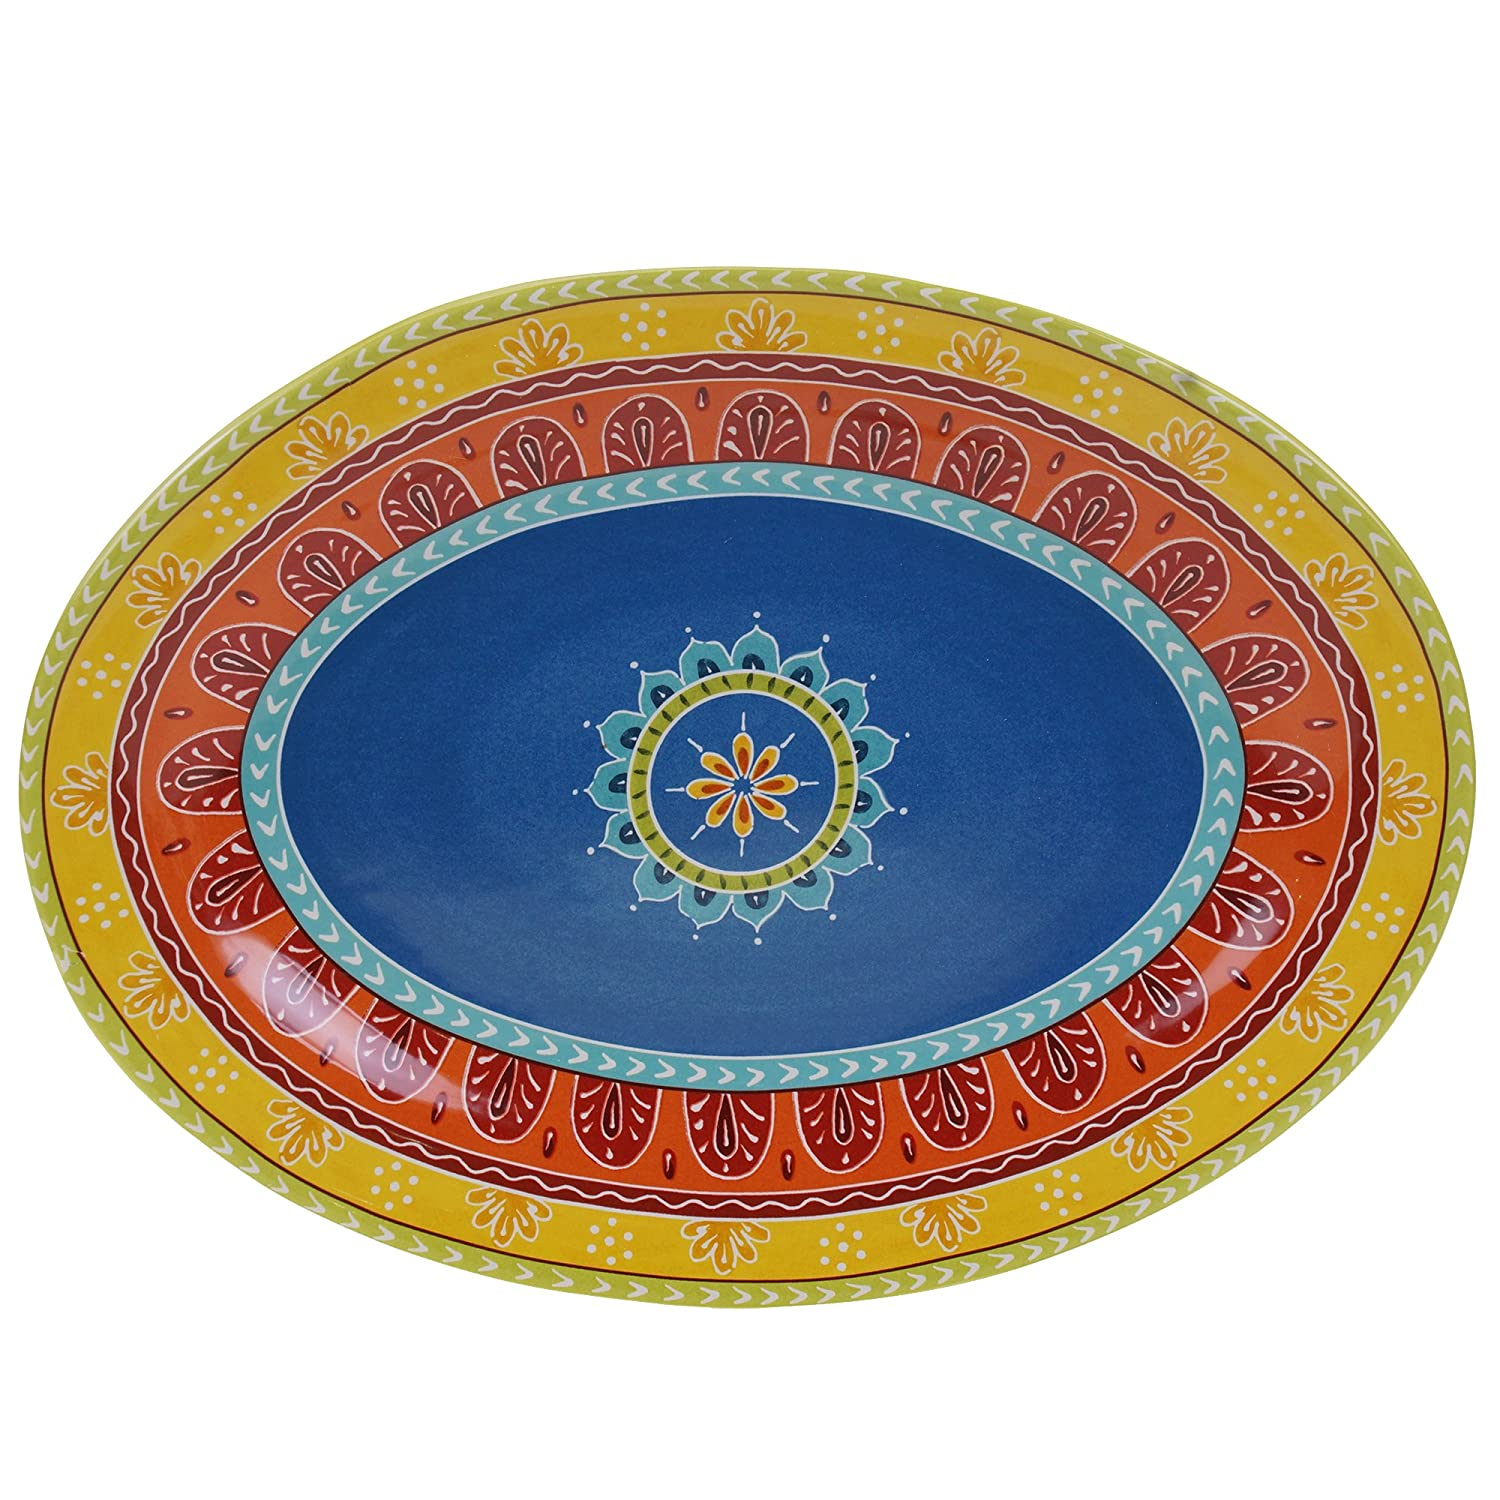 Certified International 14182 Valencia Oval Platter, 16 X 12, Multicolor 16 X 12